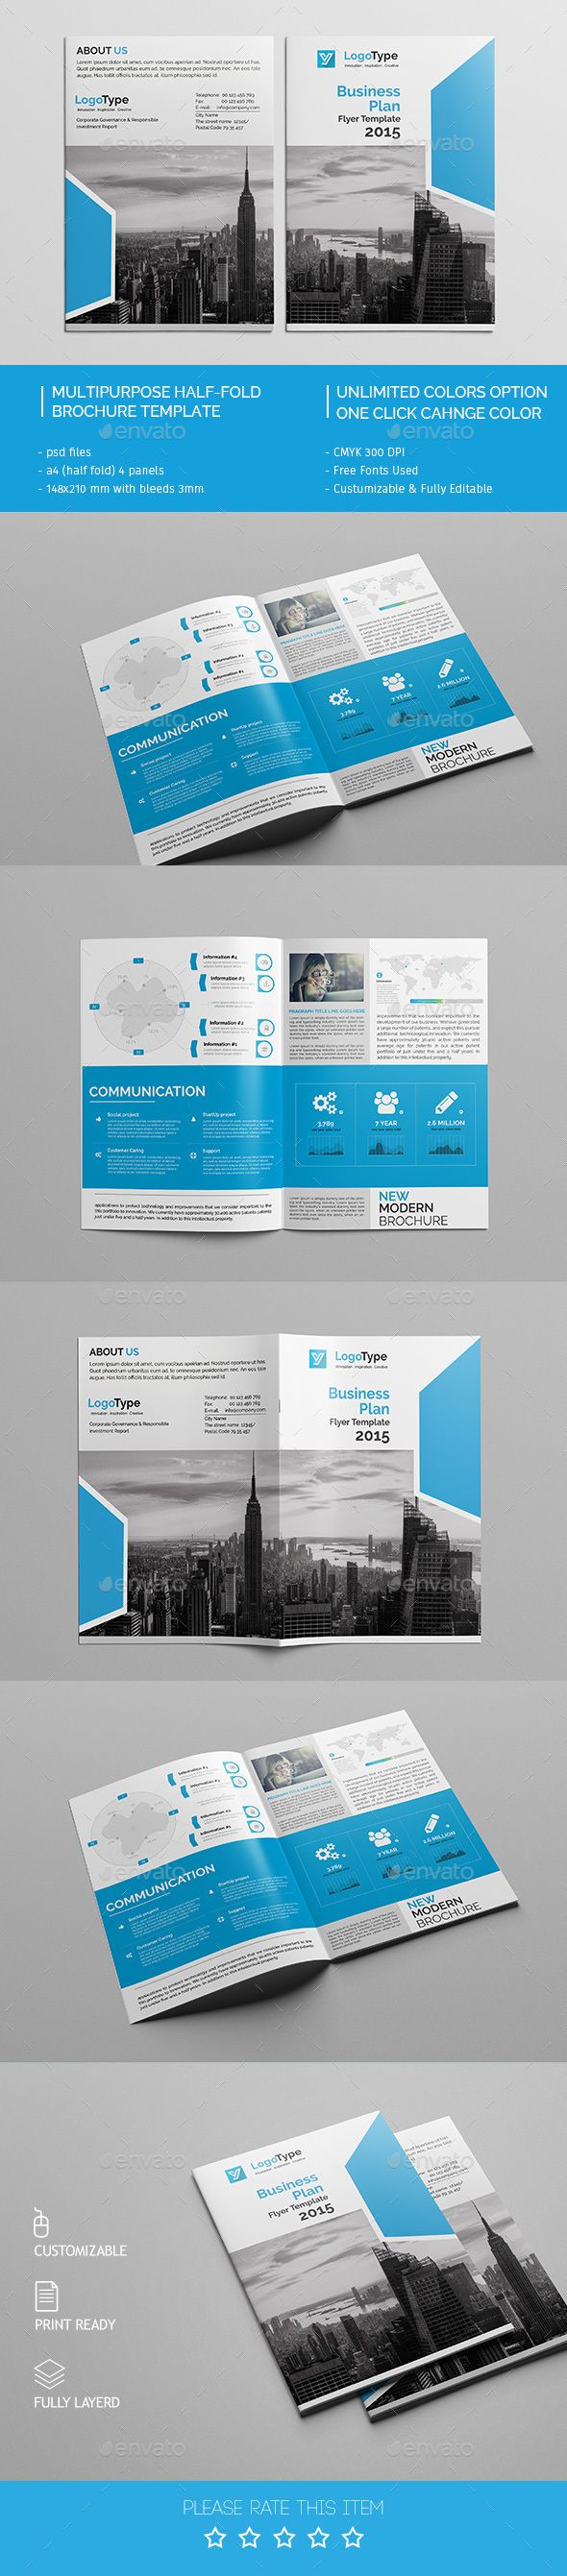 Corporate bi fold brochure template 07 design brochures for Bi fold brochure template indesign free